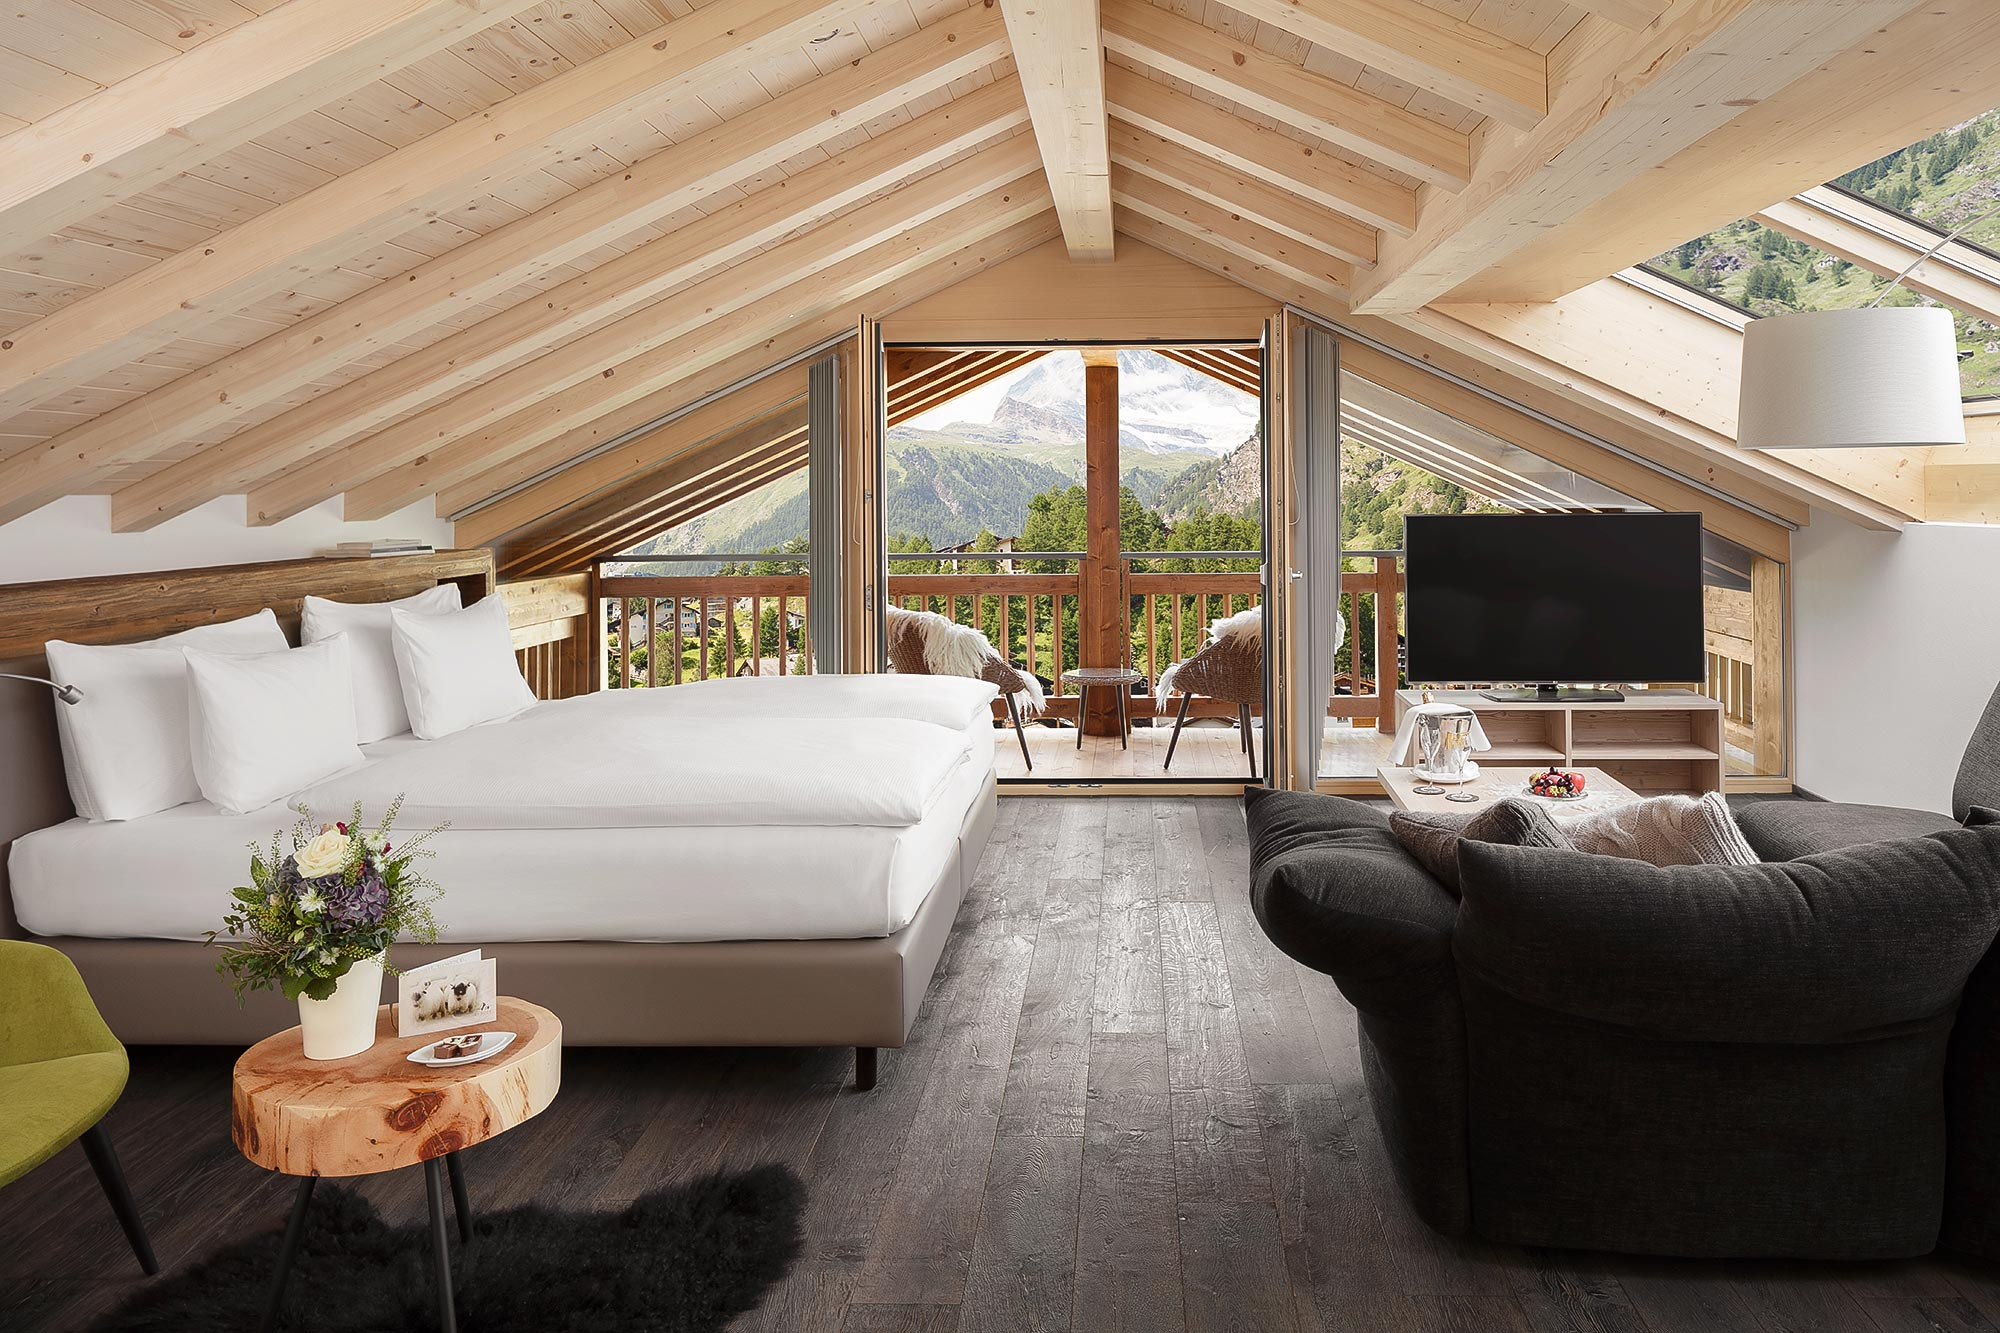 Luxury-Chalet-Switzerland-Hotel-photography-by-Adrian-Kilchherr